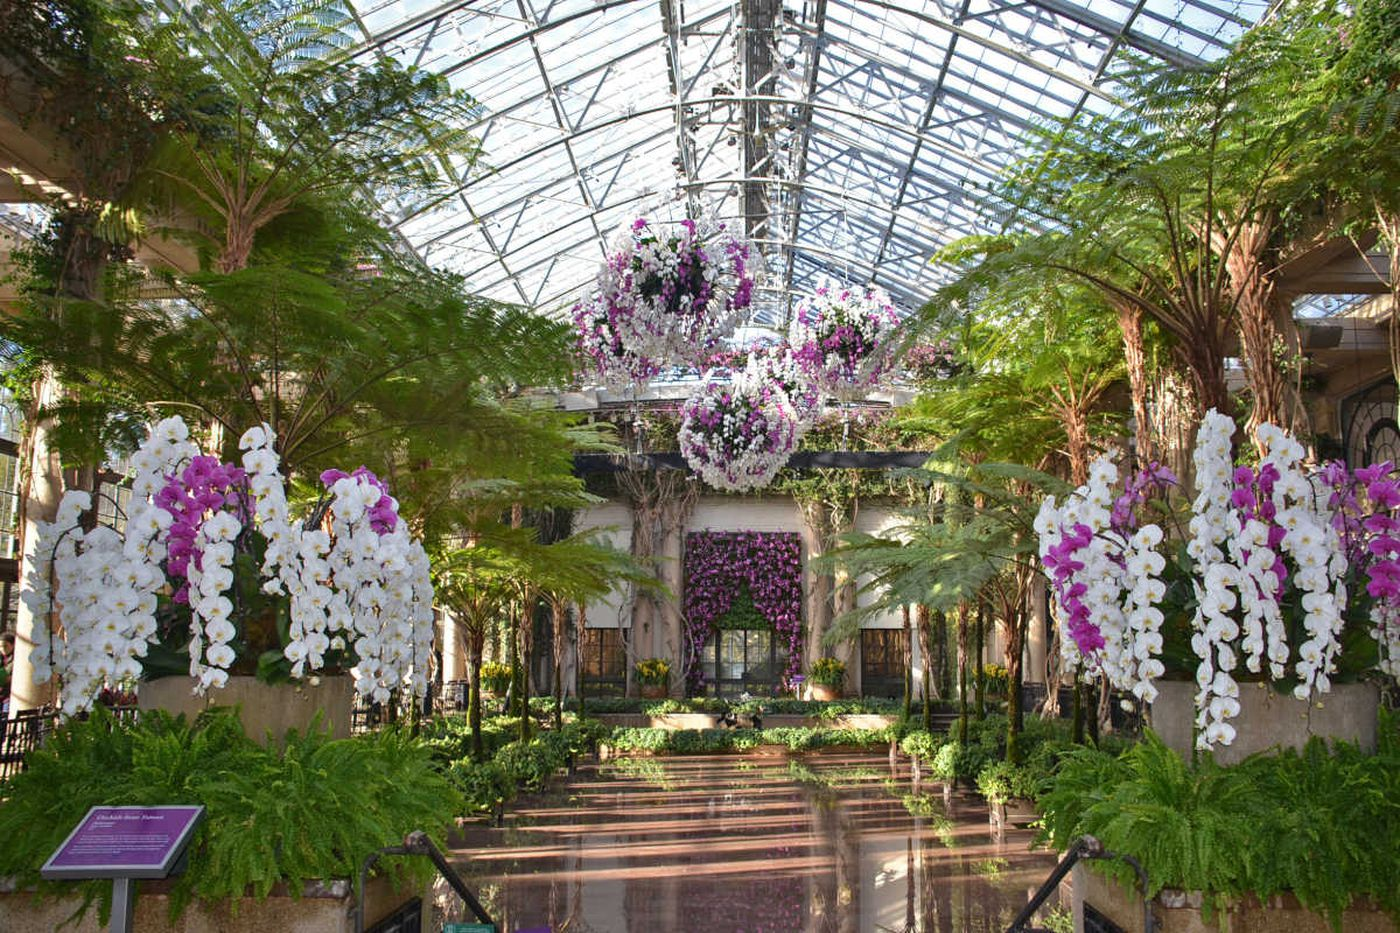 4,500 orchids, including one that takes over three years to grow, will be on display at Longwood Gardens' Orchid Extravaganza